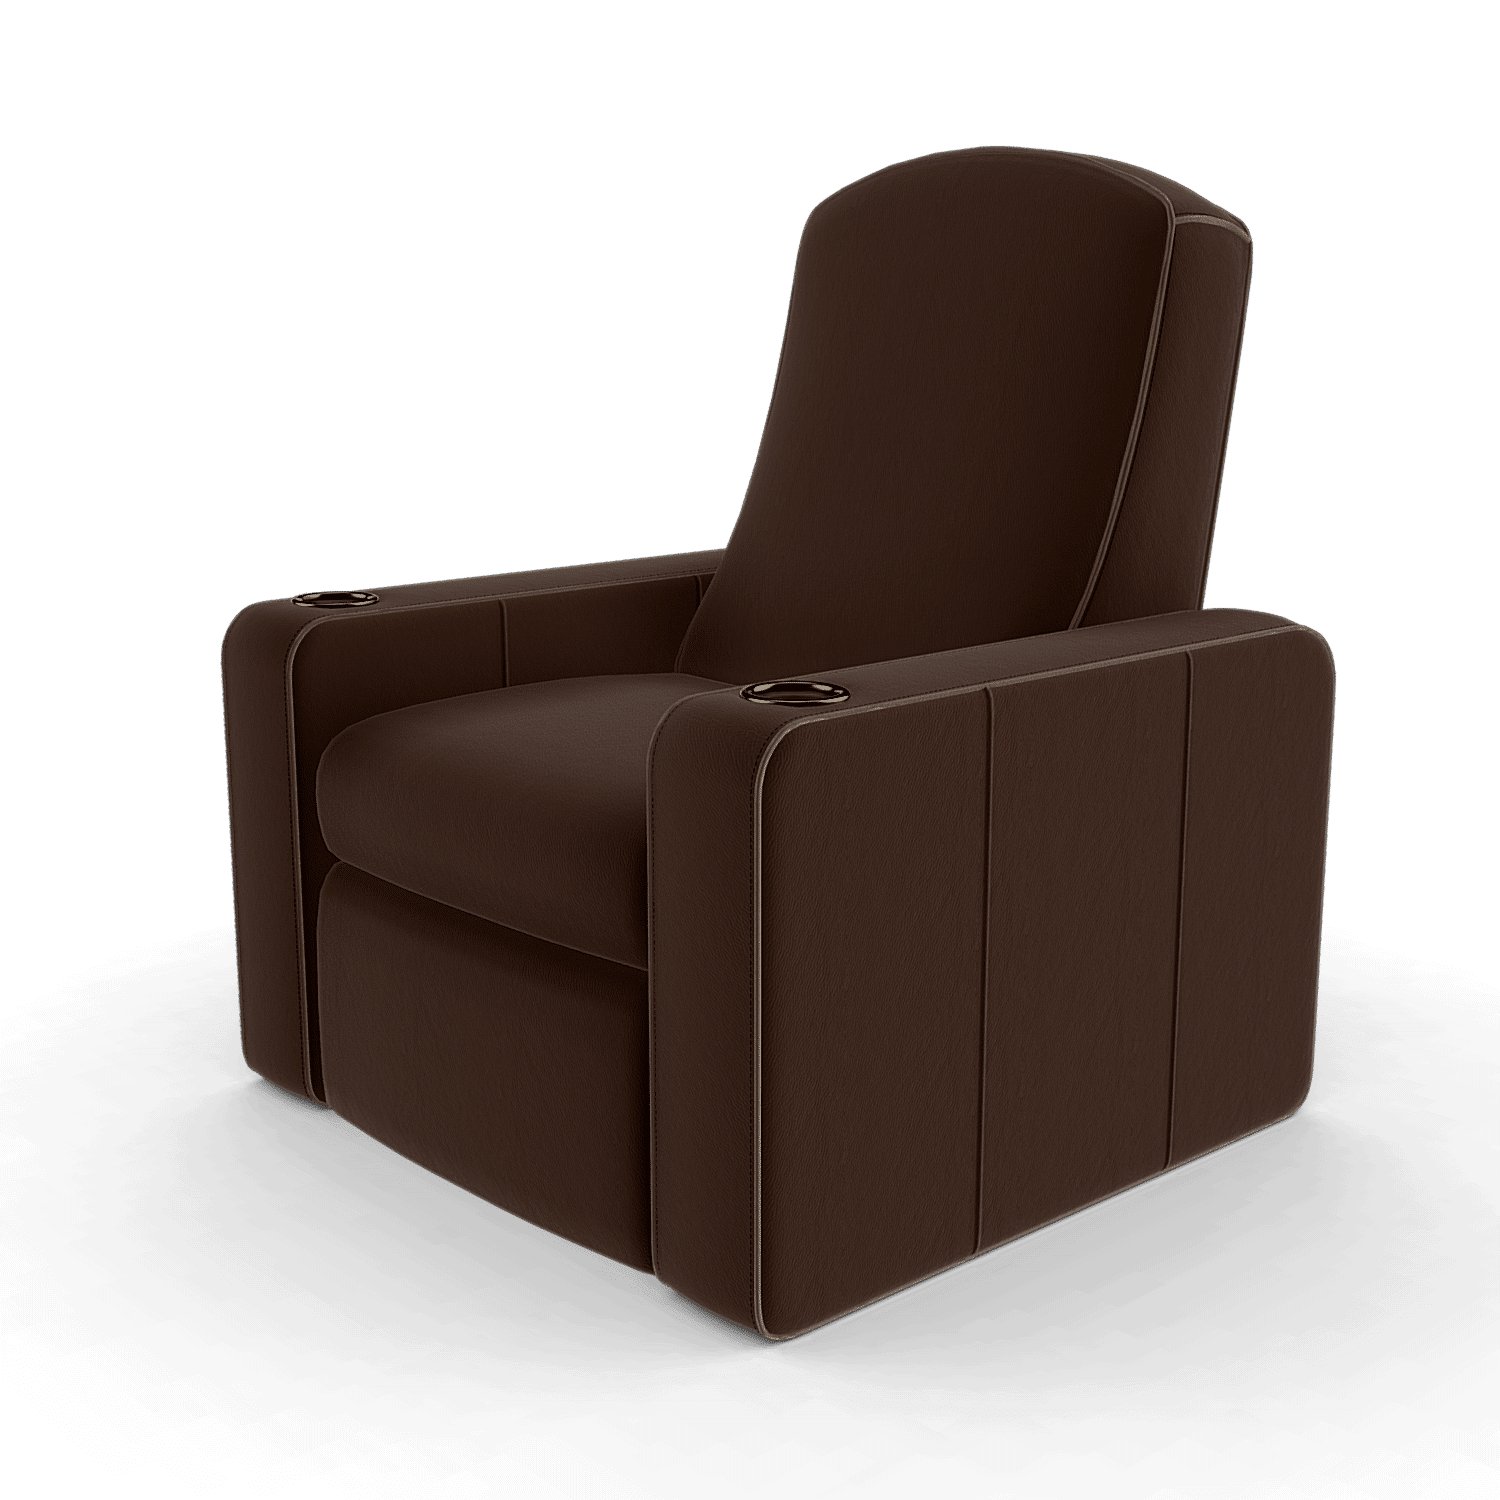 home_cinema_chairs n5_brown(1)